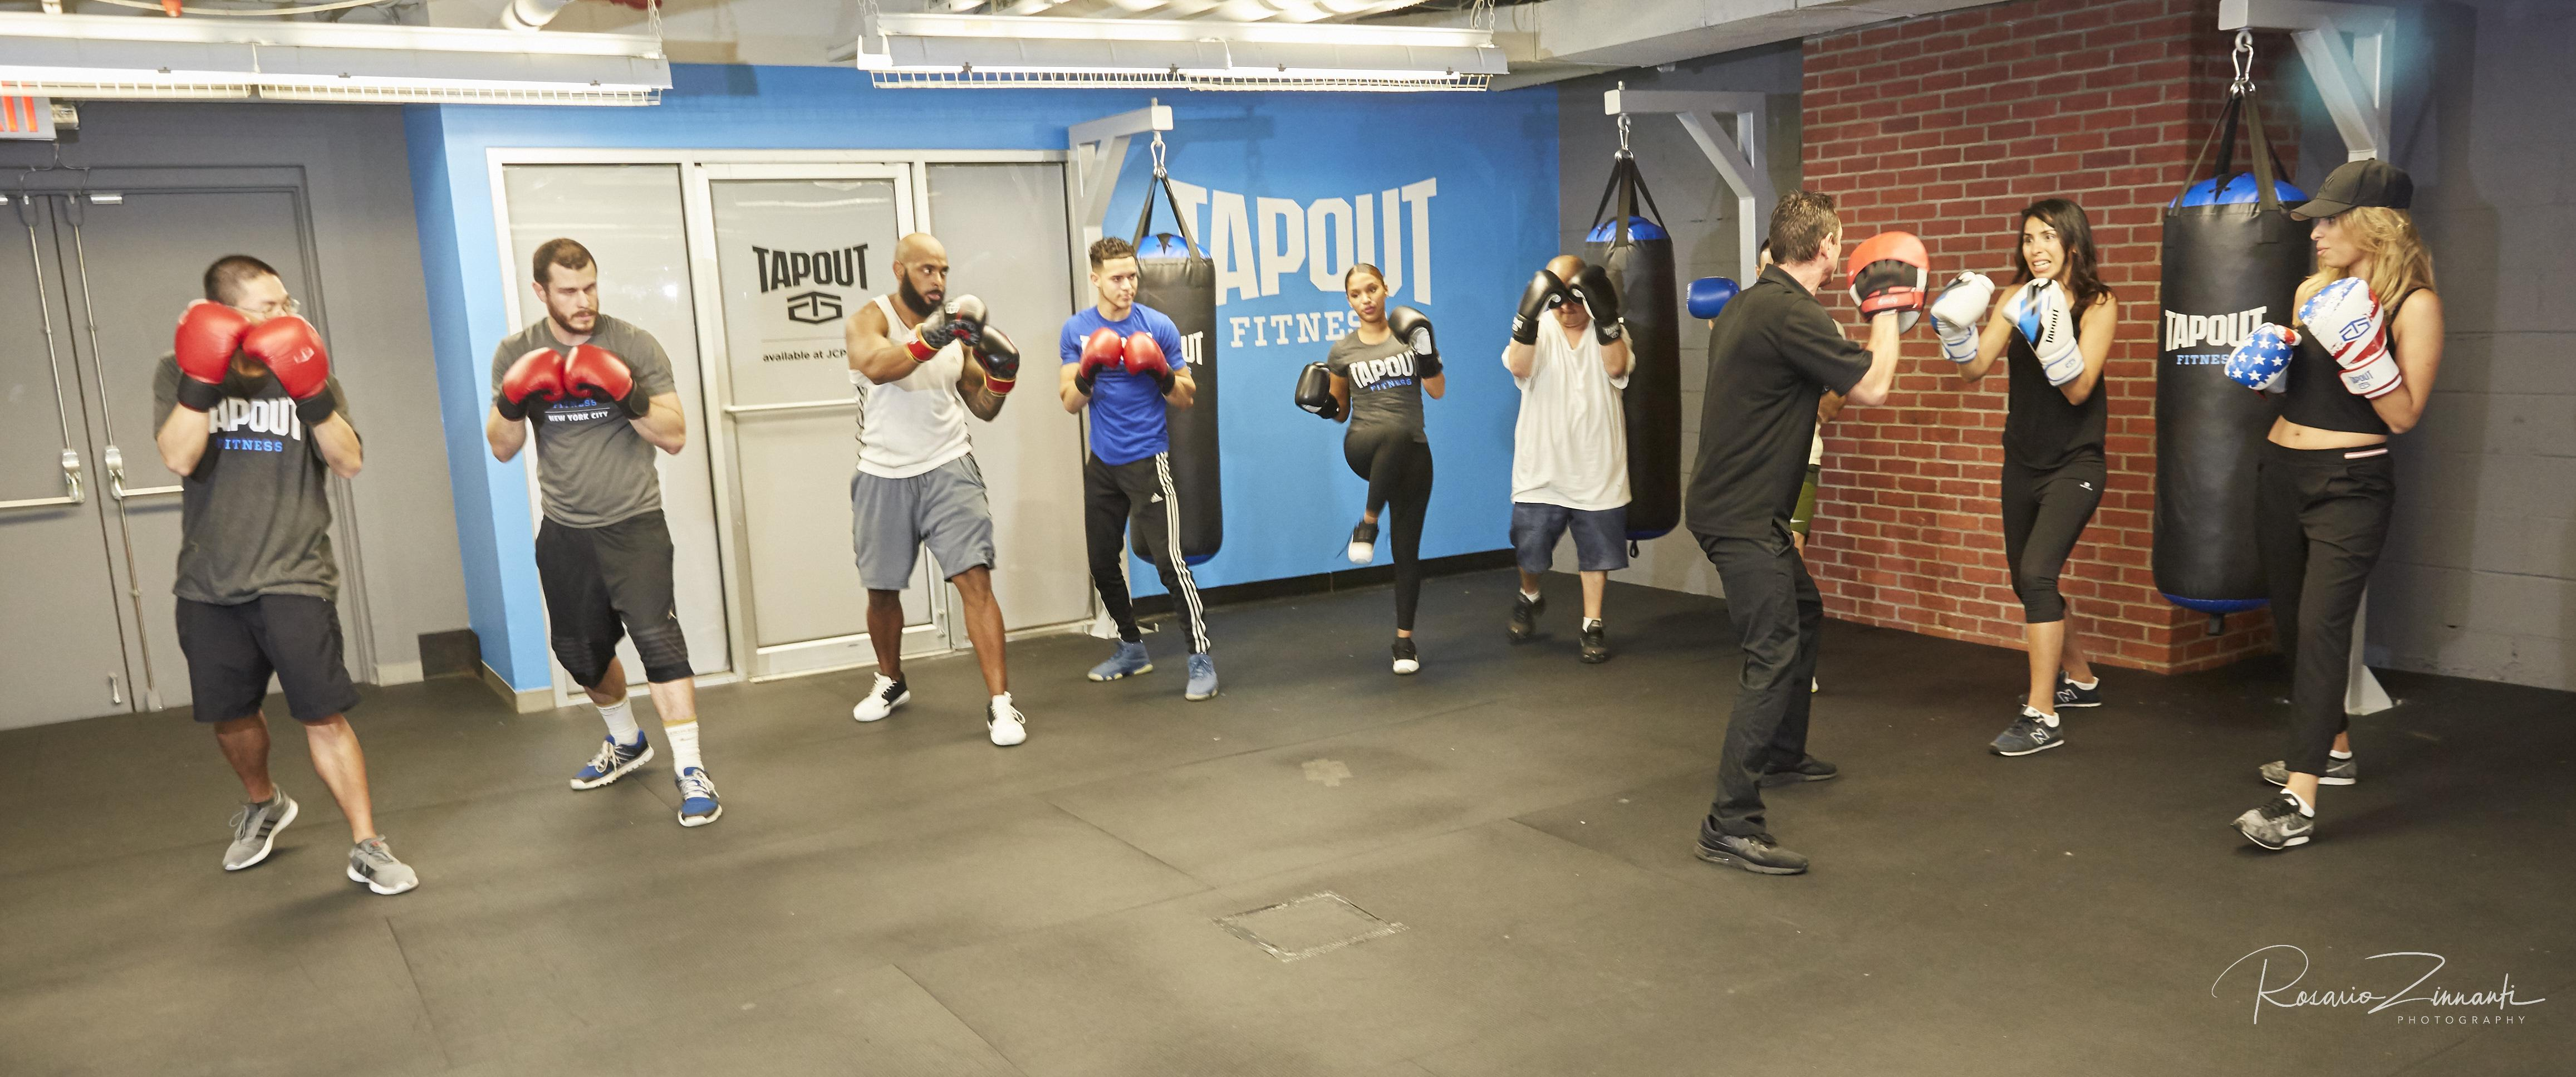 San Antonio Tx Tapout Fitness Experience Our Martial Art Infused